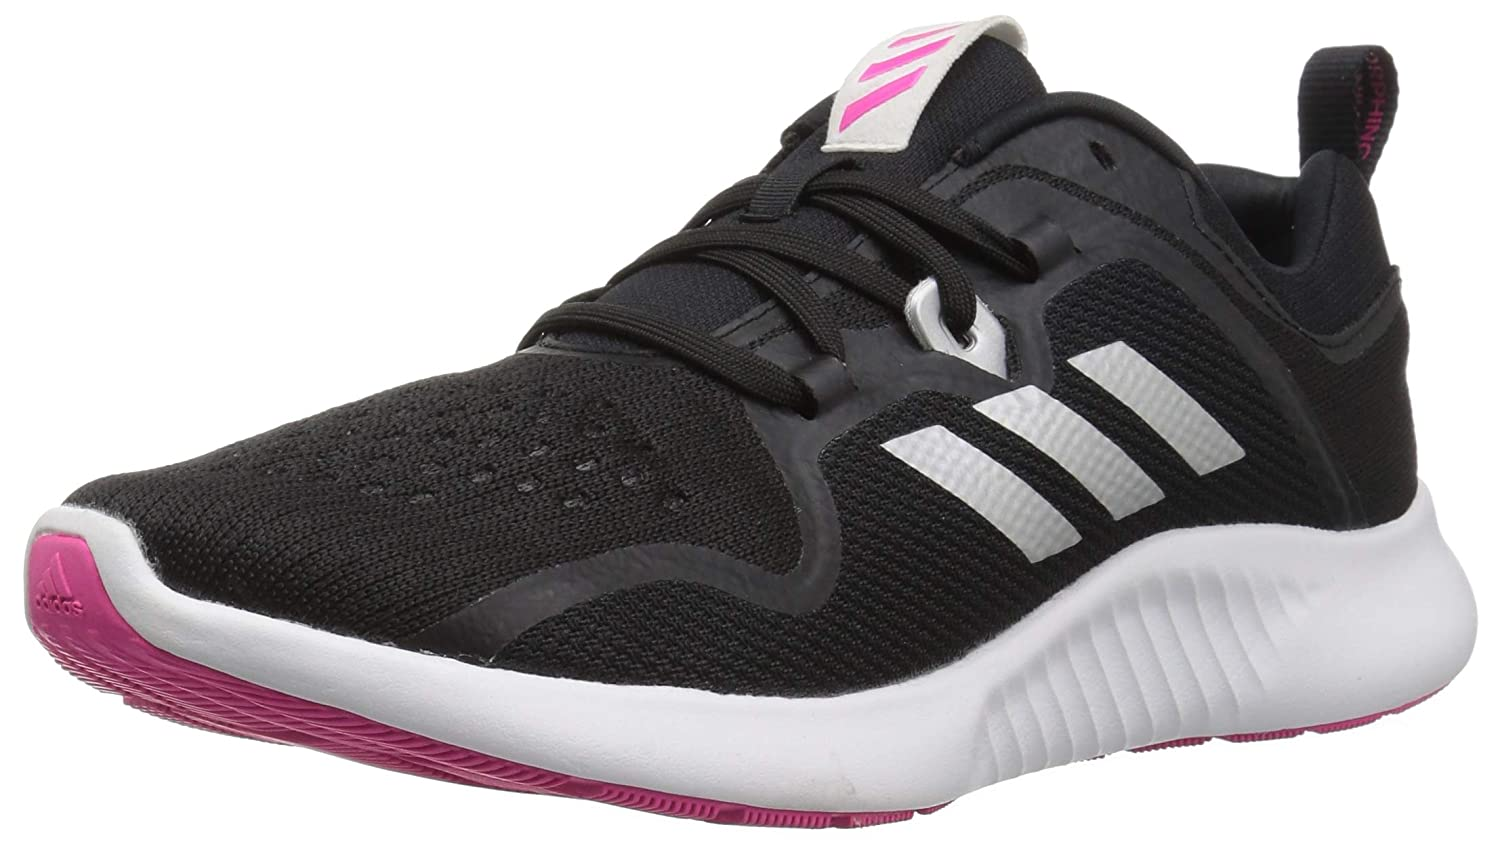 Black Silver Metallic Shock Pink Adidas Womens Edgebounce Running shoes